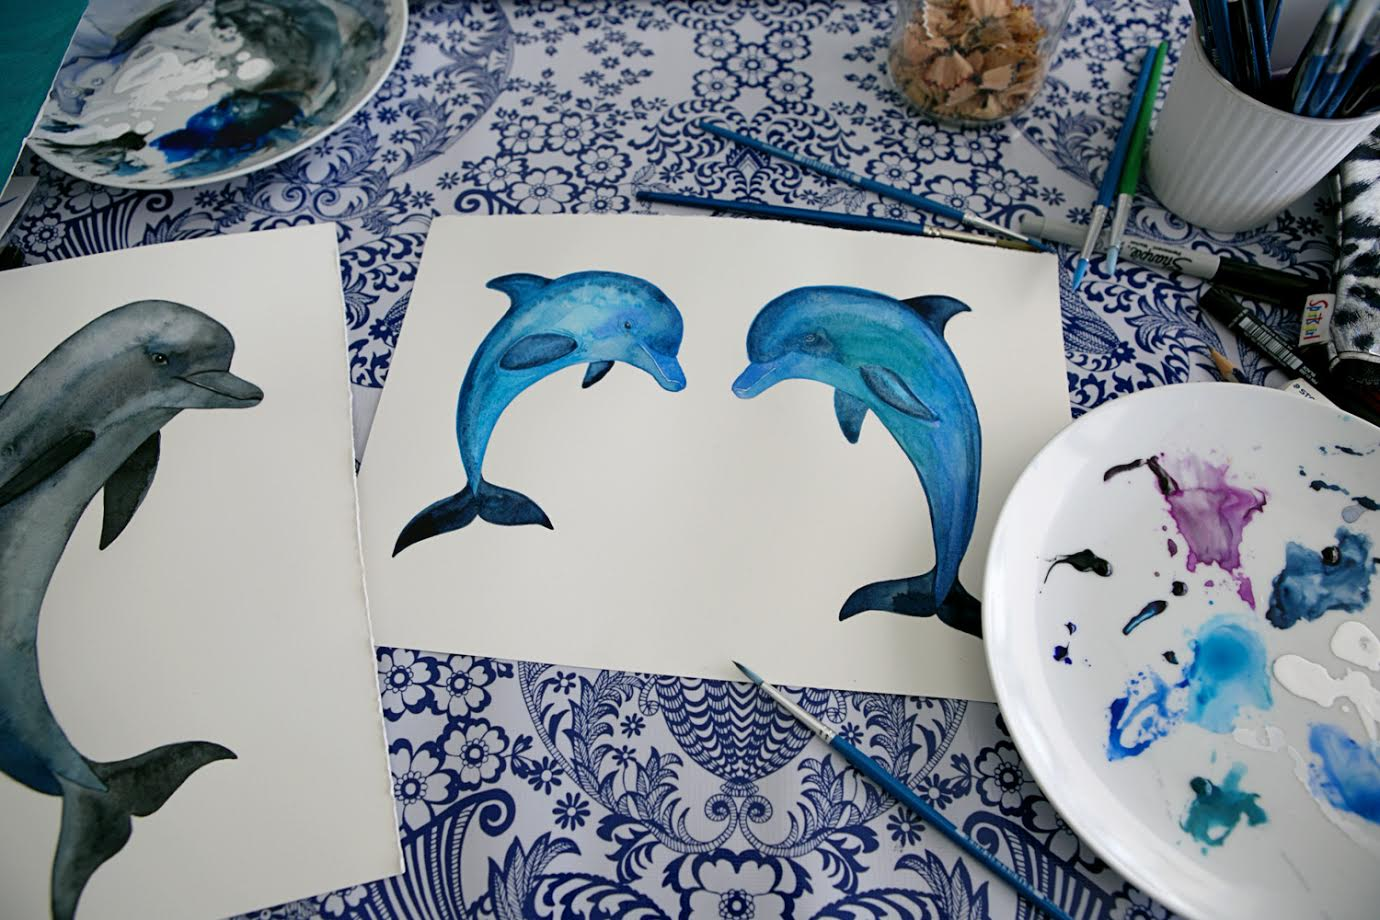 Dolphin Watercolor Sea Painting/ A Creative Home..with Artist Michelle Fleur in Perth, Australia // Surelysimple.com